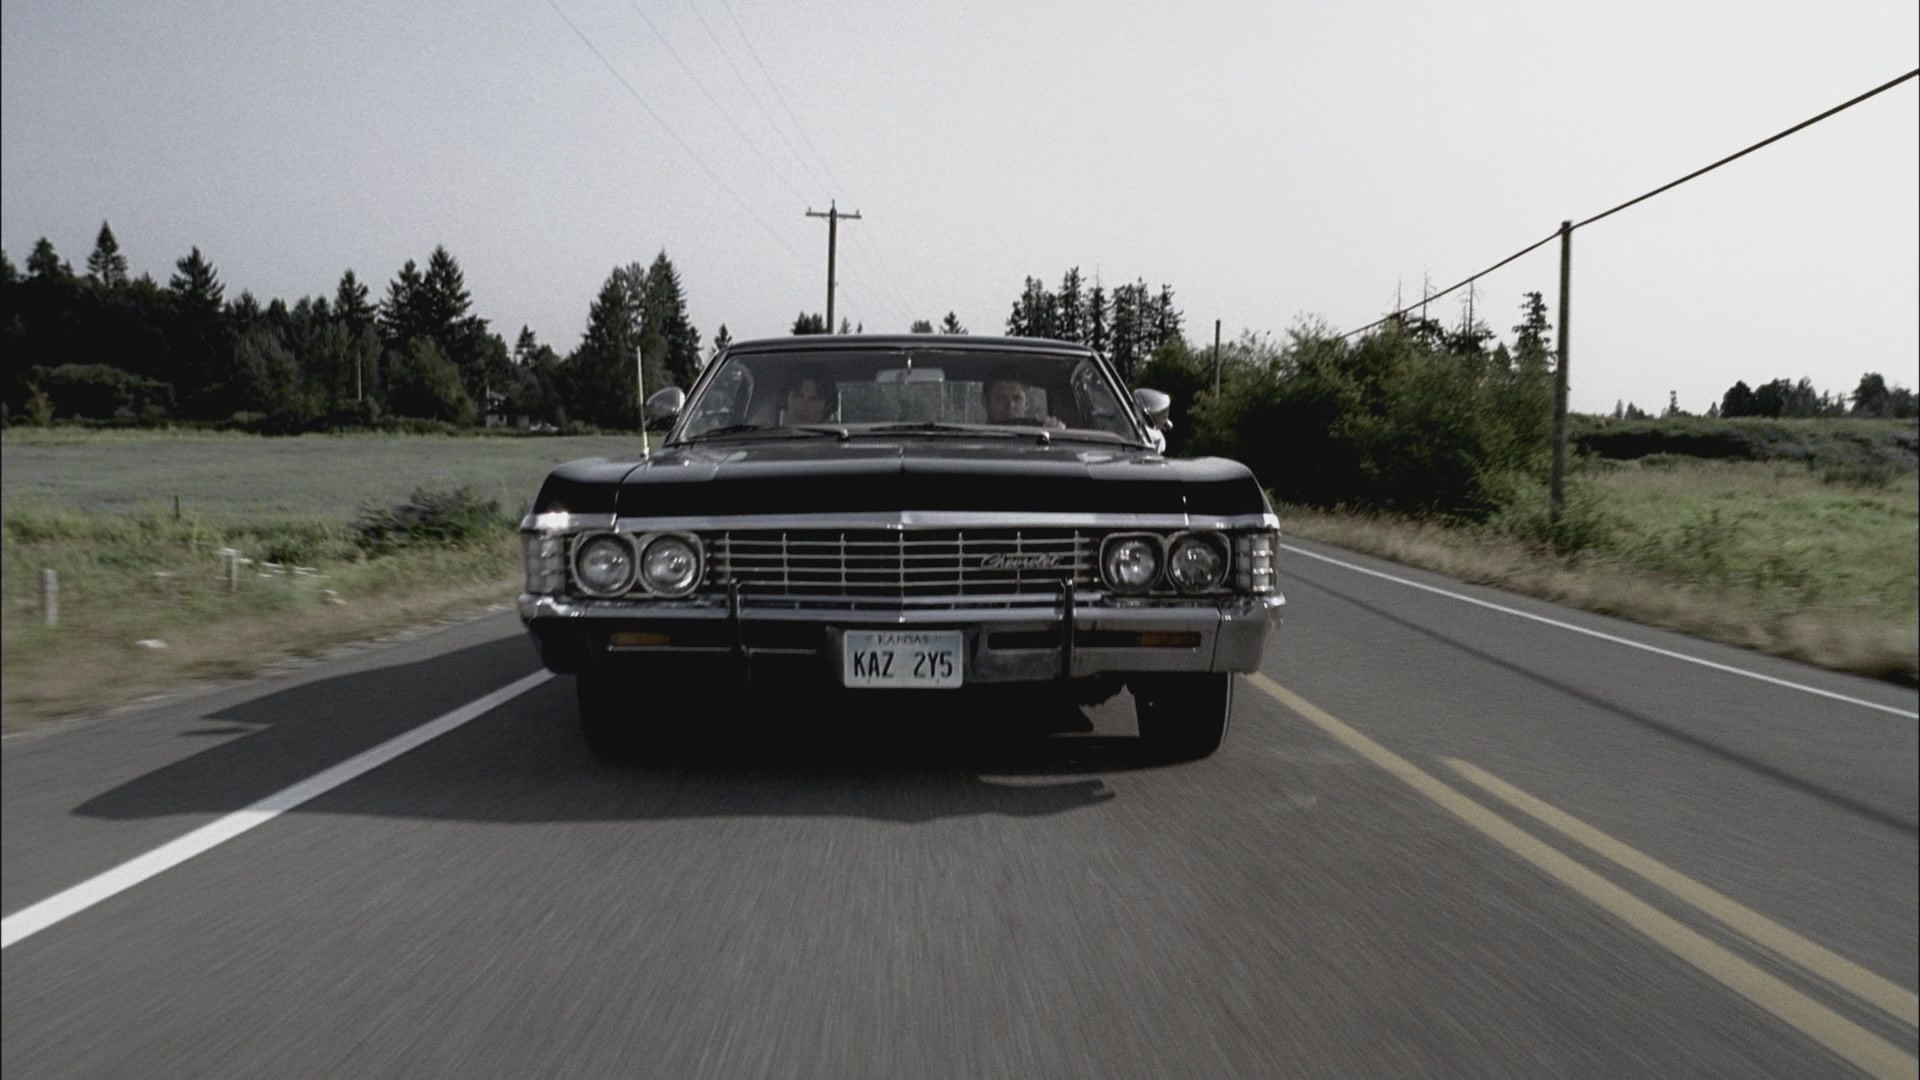 then the newly repaired Impala roars down the road!